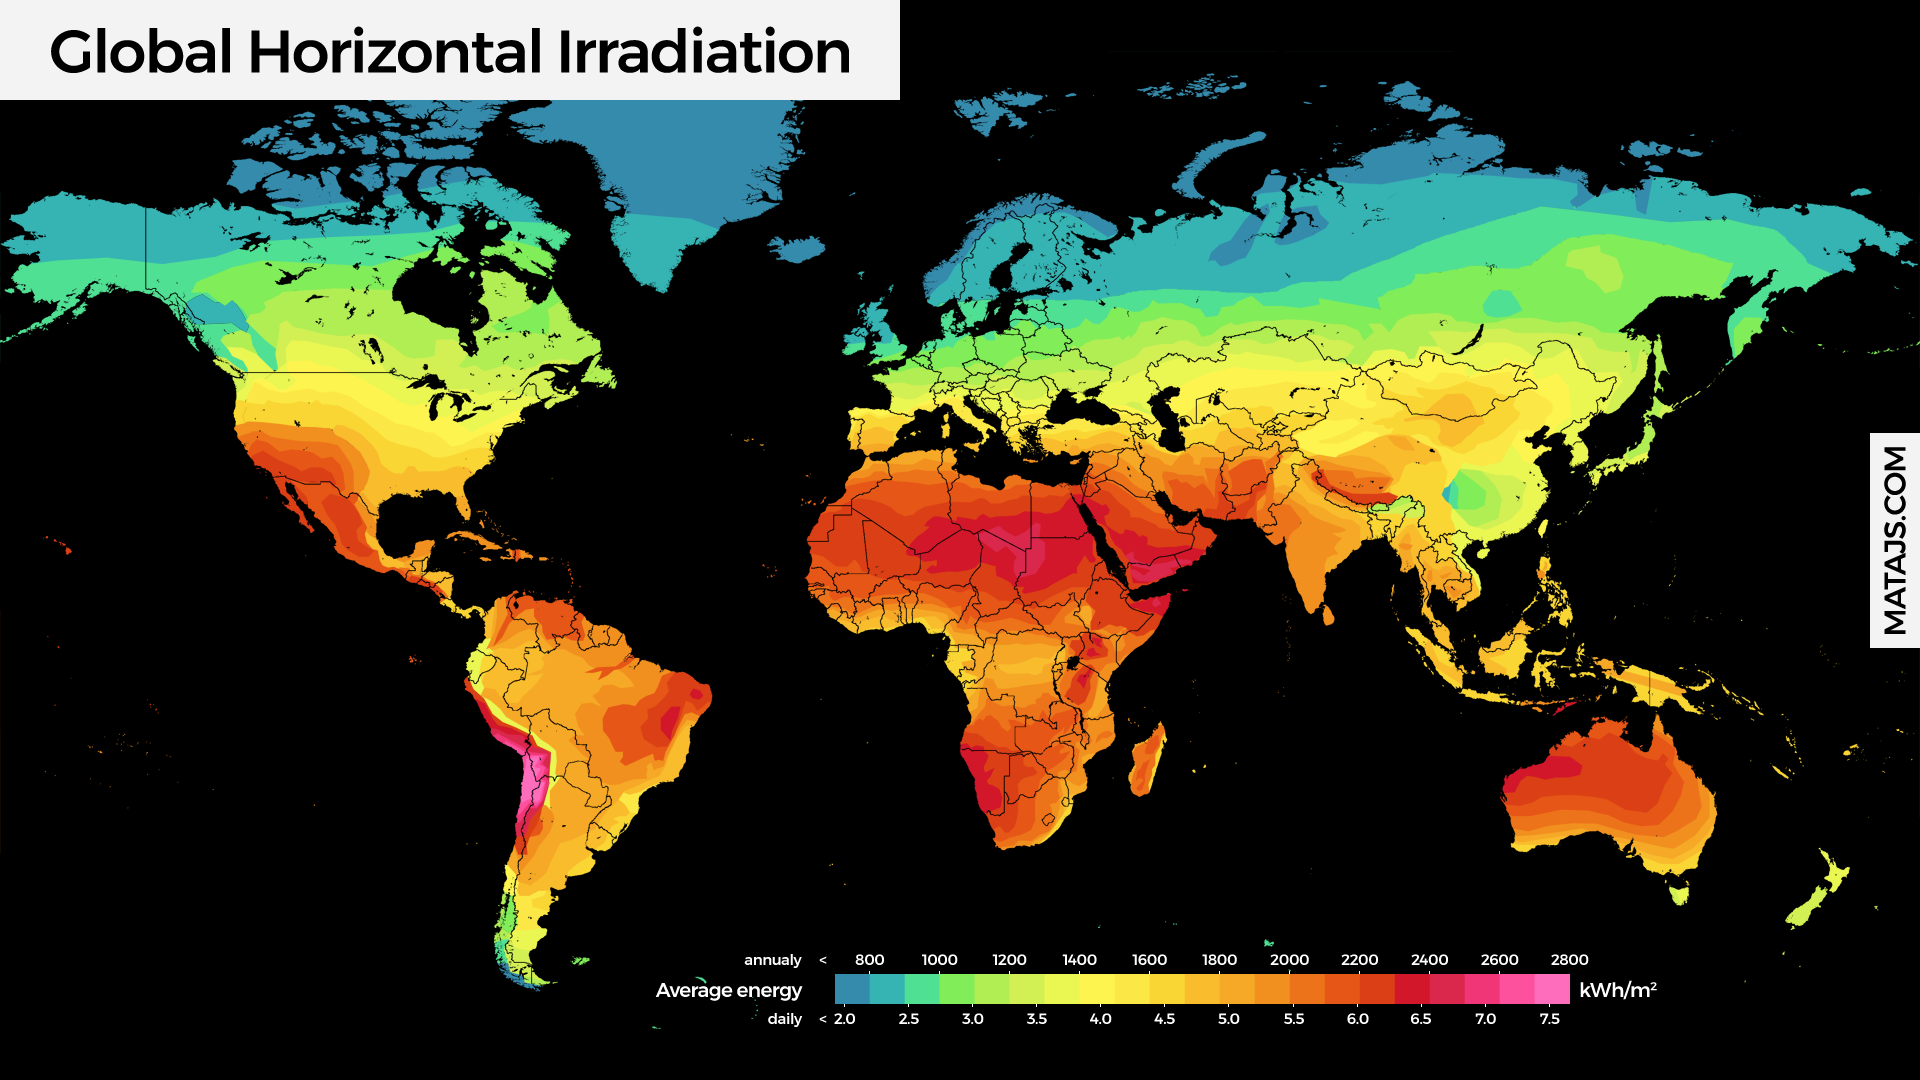 Frequently asked questions faq about solar energy matajs global horizontal irradiation map in kwh per yearday gumiabroncs Image collections